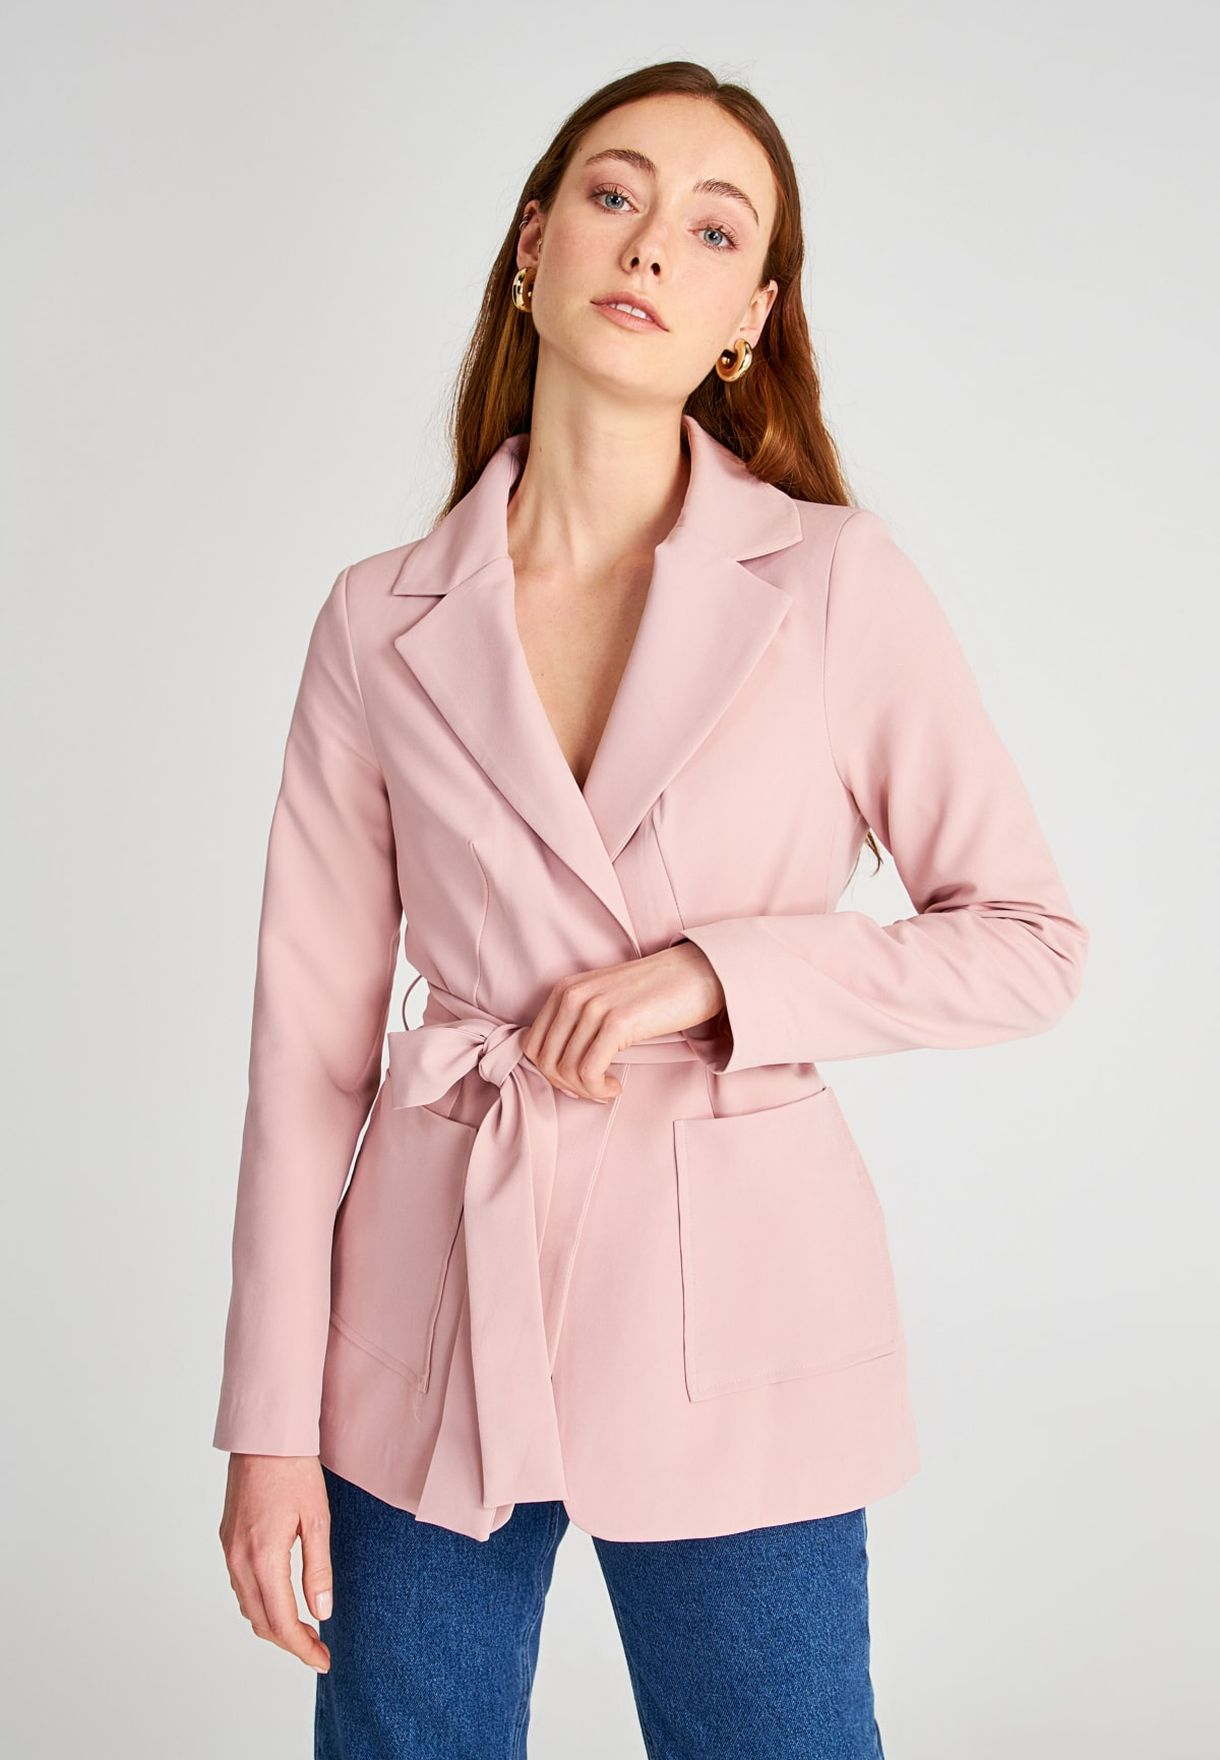 Buy Trendyol Pink Tailored Blazer For Women, Uae 27680at8znwp